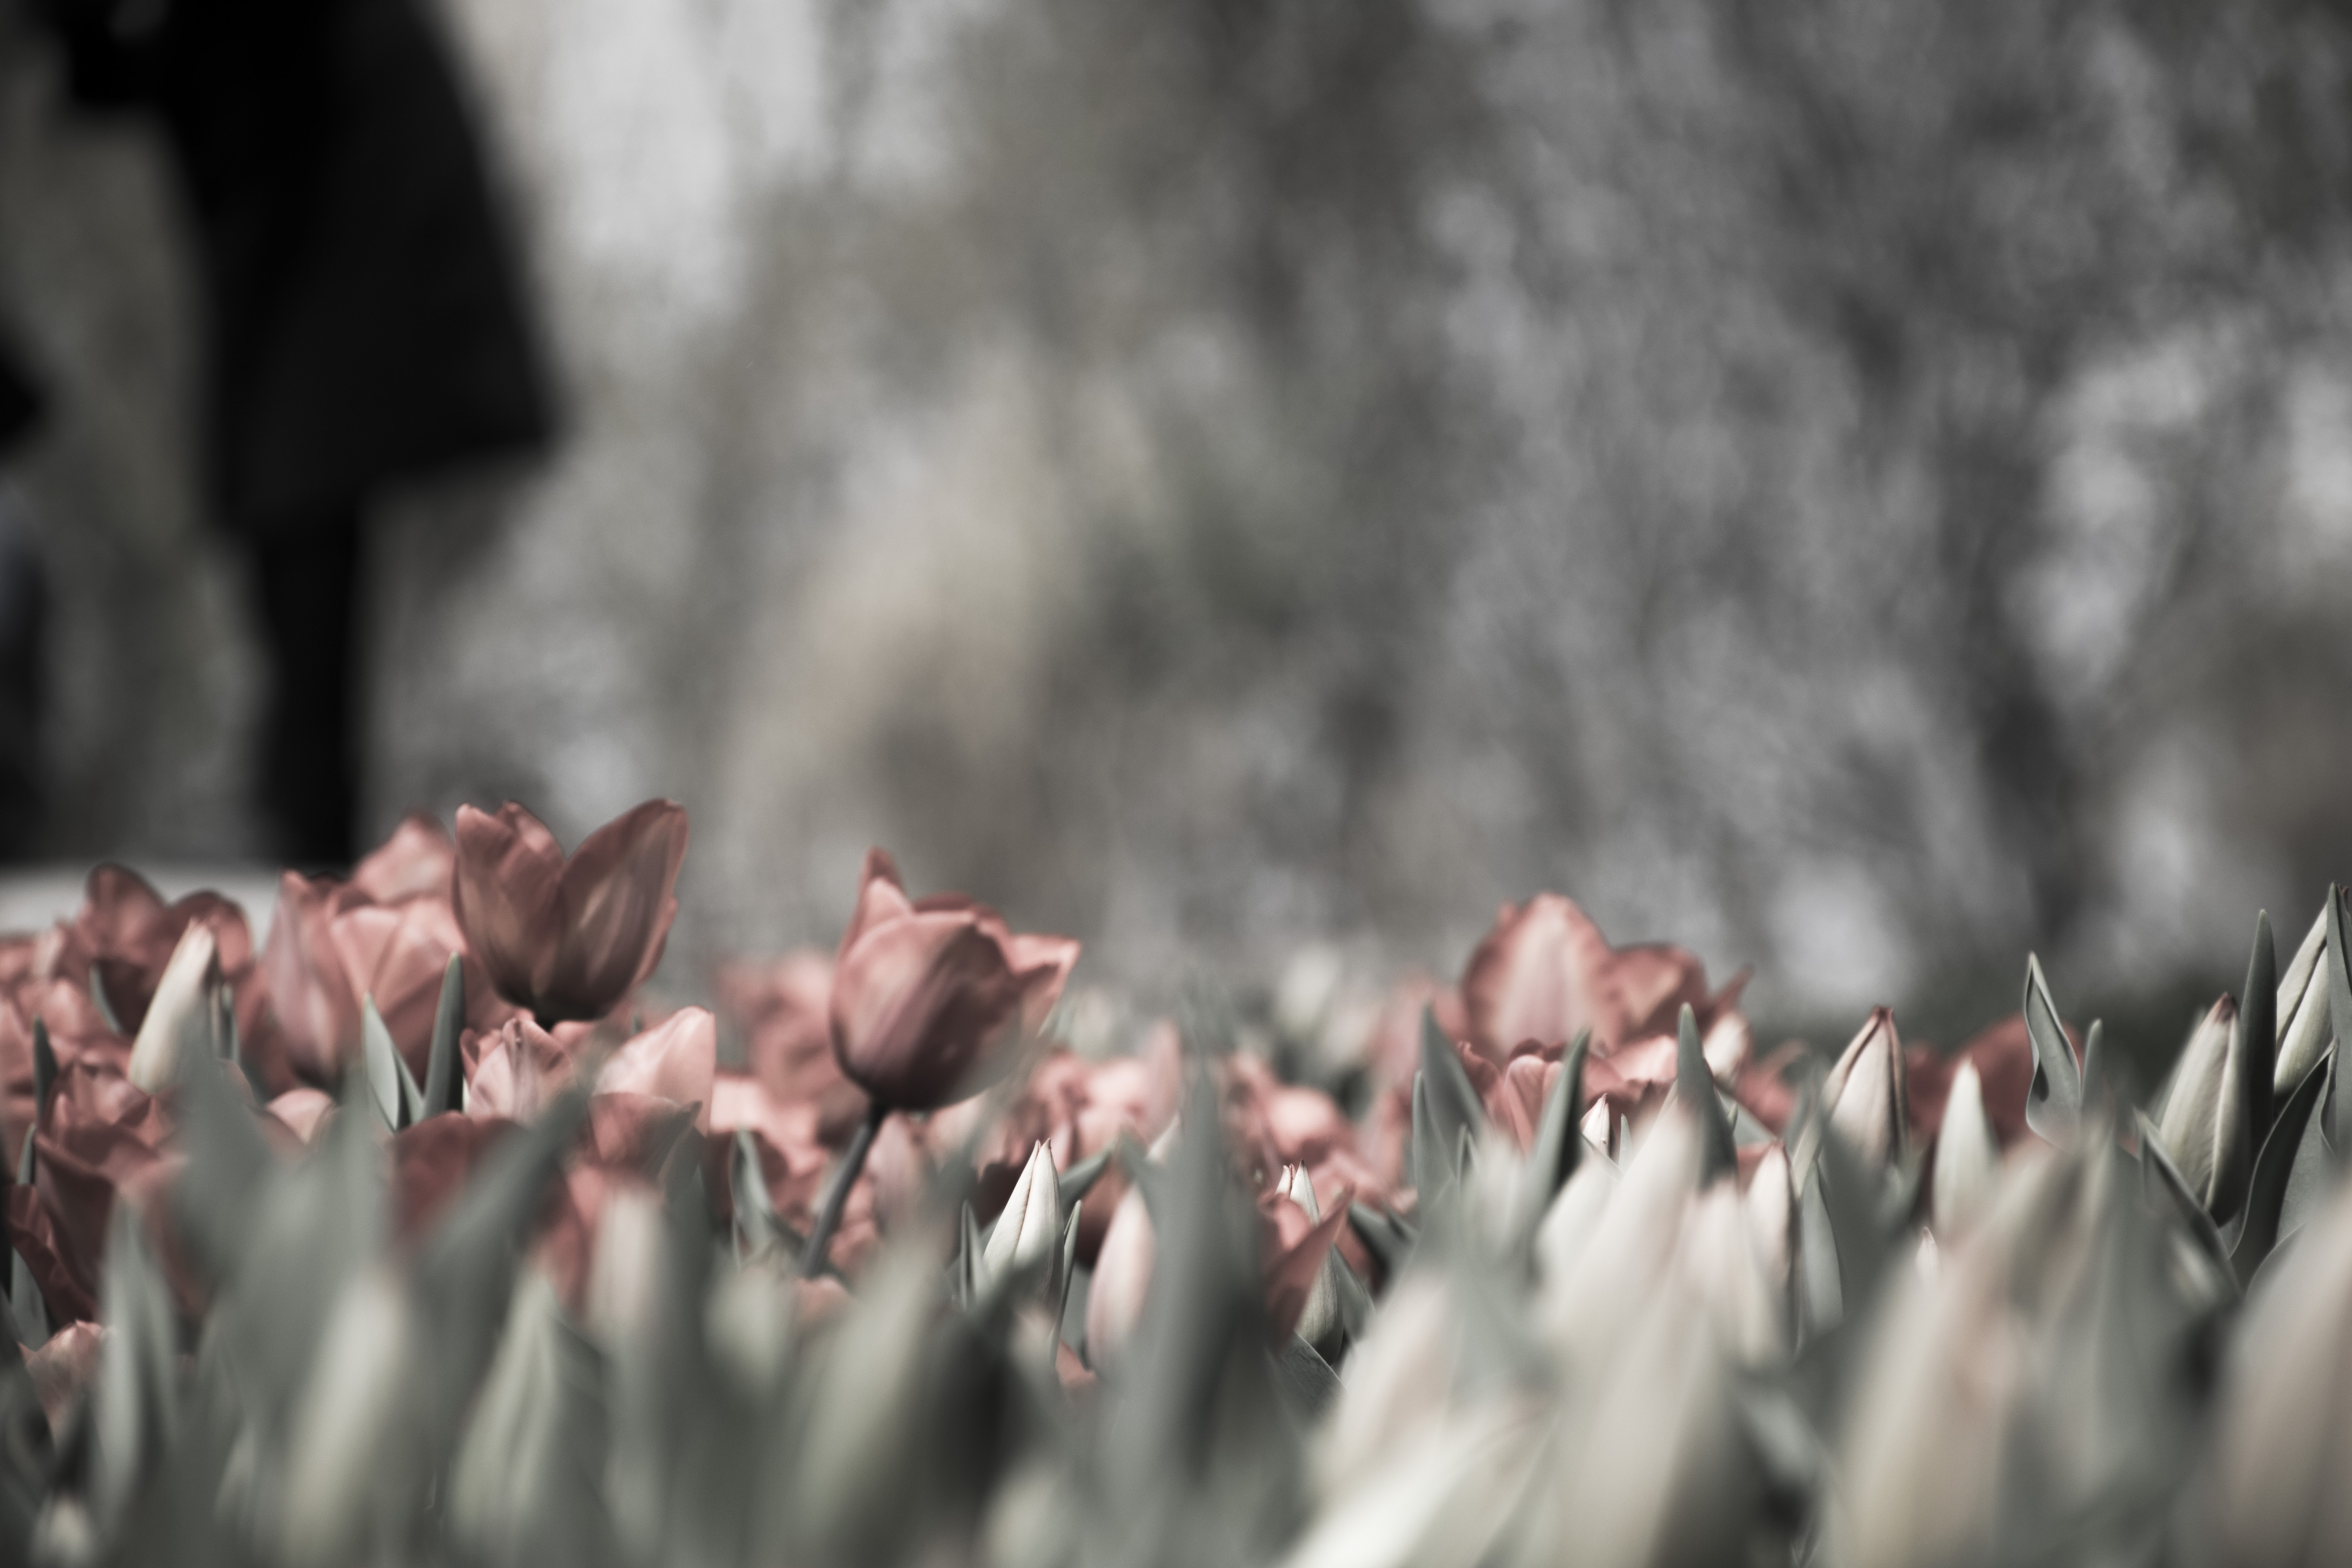 A desaturated shot of a patch of red tulips